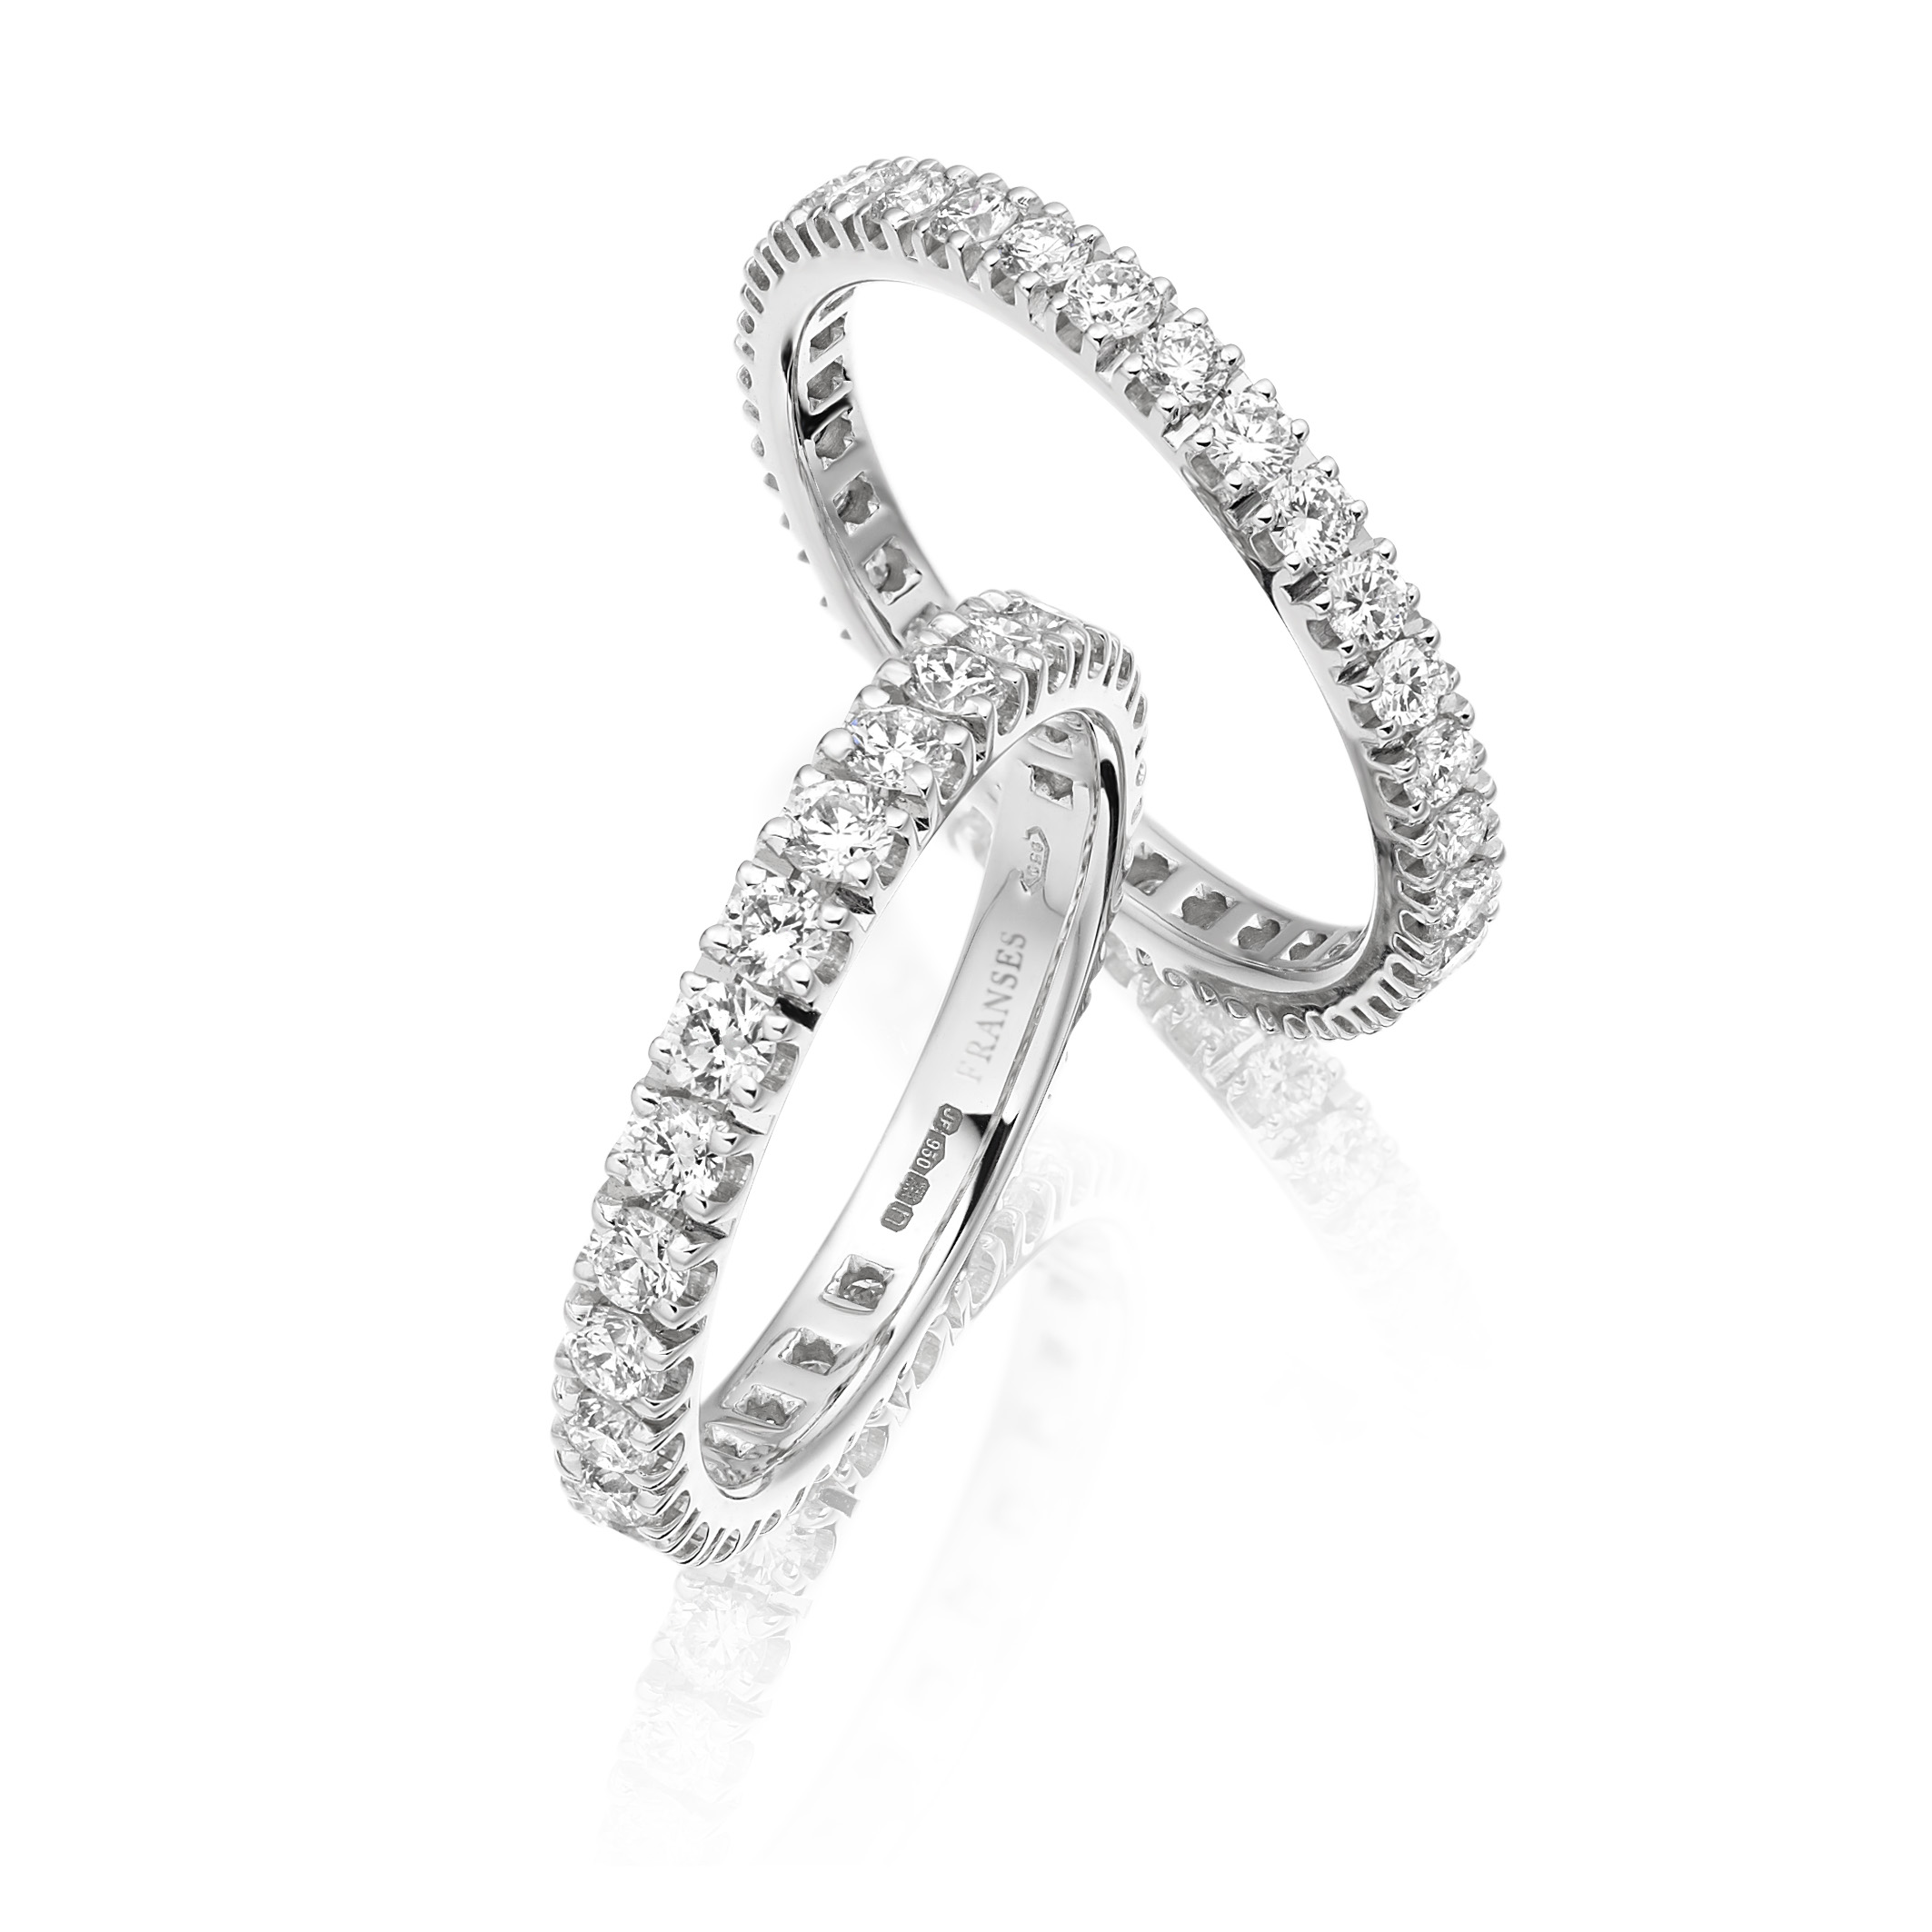 Brilliant-cut diamond ring - NA102